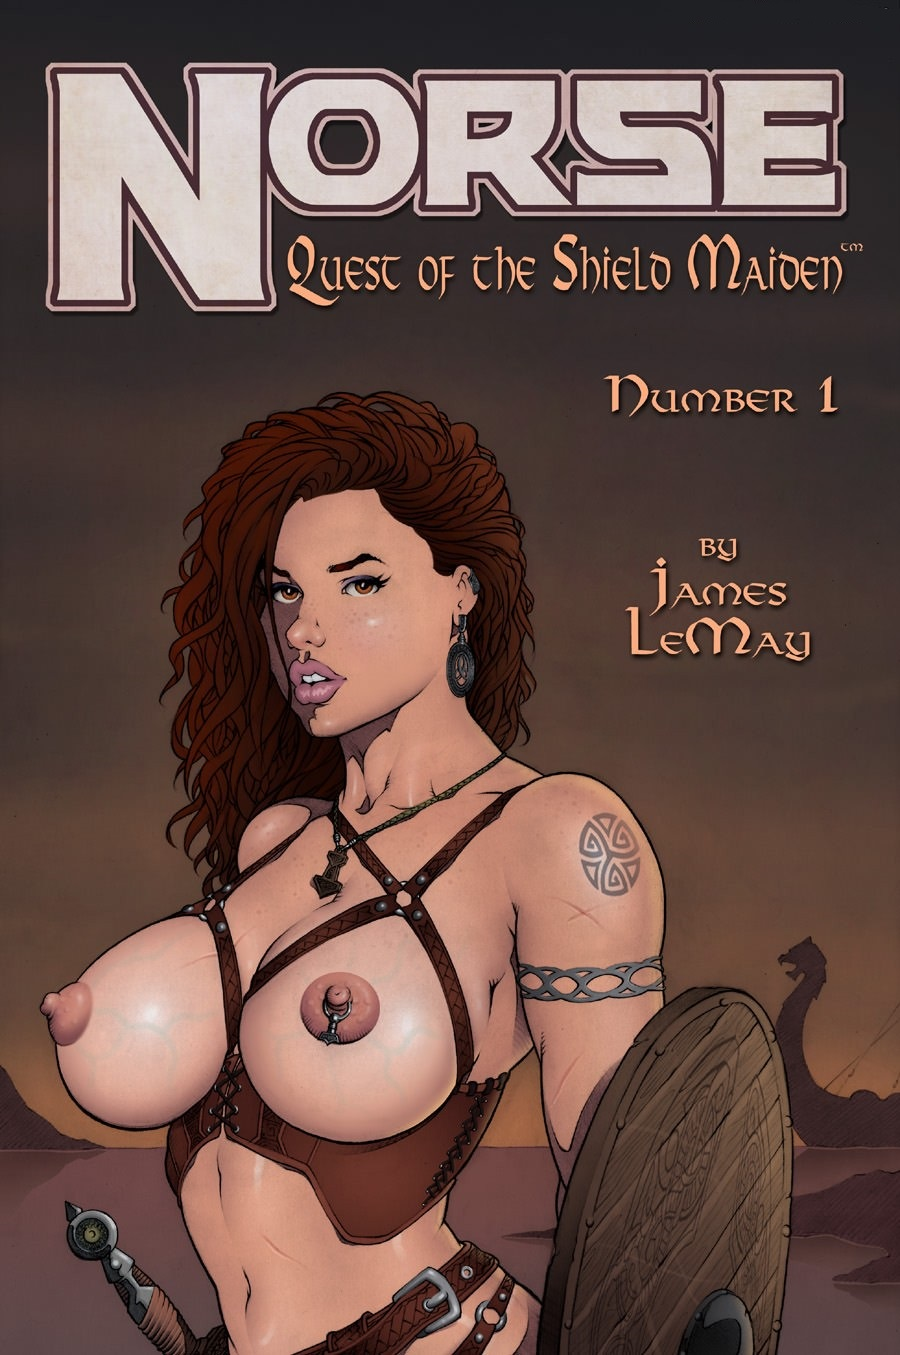 NORSE – Quest of the Shieldmaiden